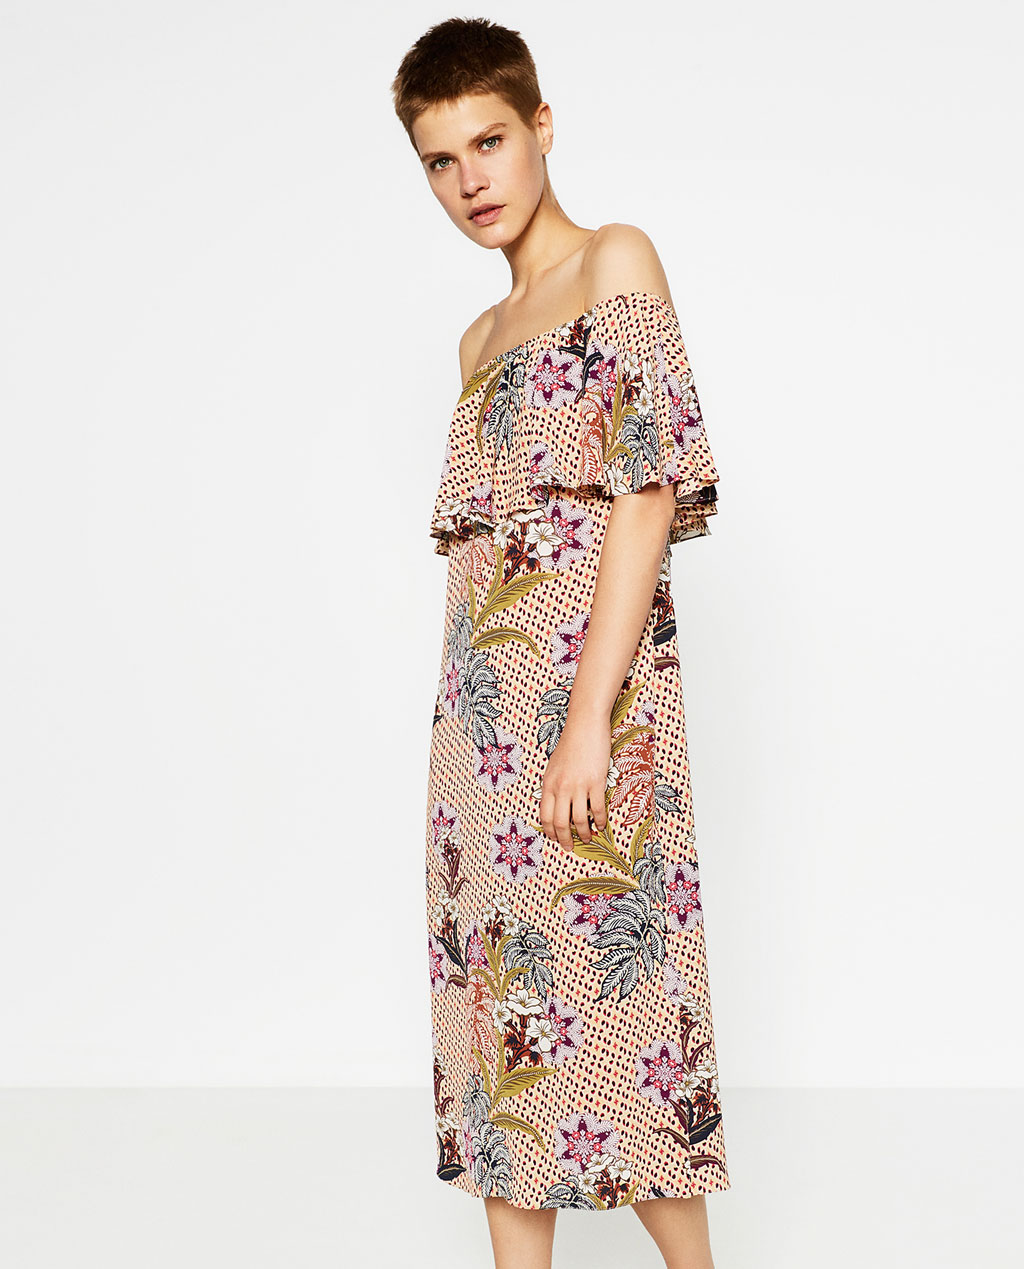 Zara Bardot Floral Dress